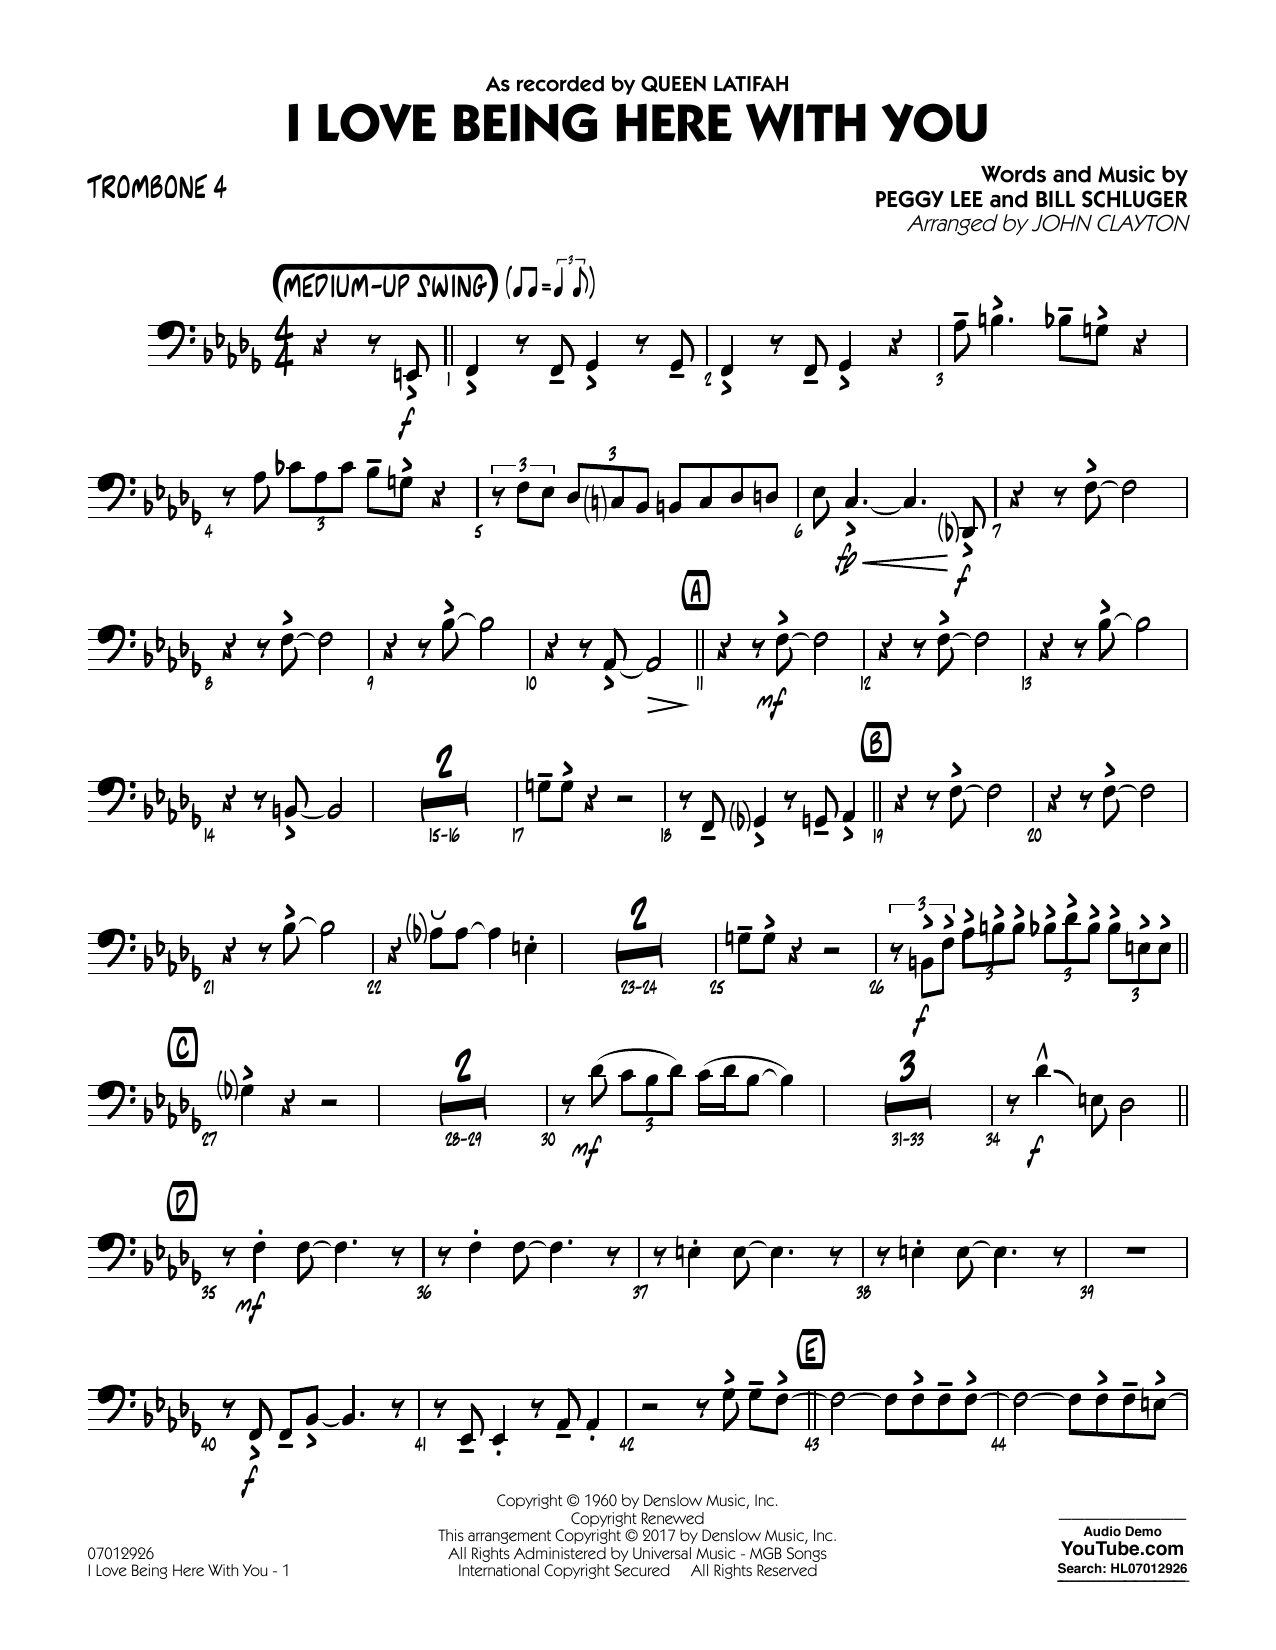 John Clayton I Love Being Here with You (Key: Db) - Trombone 4 sheet music notes and chords. Download Printable PDF.